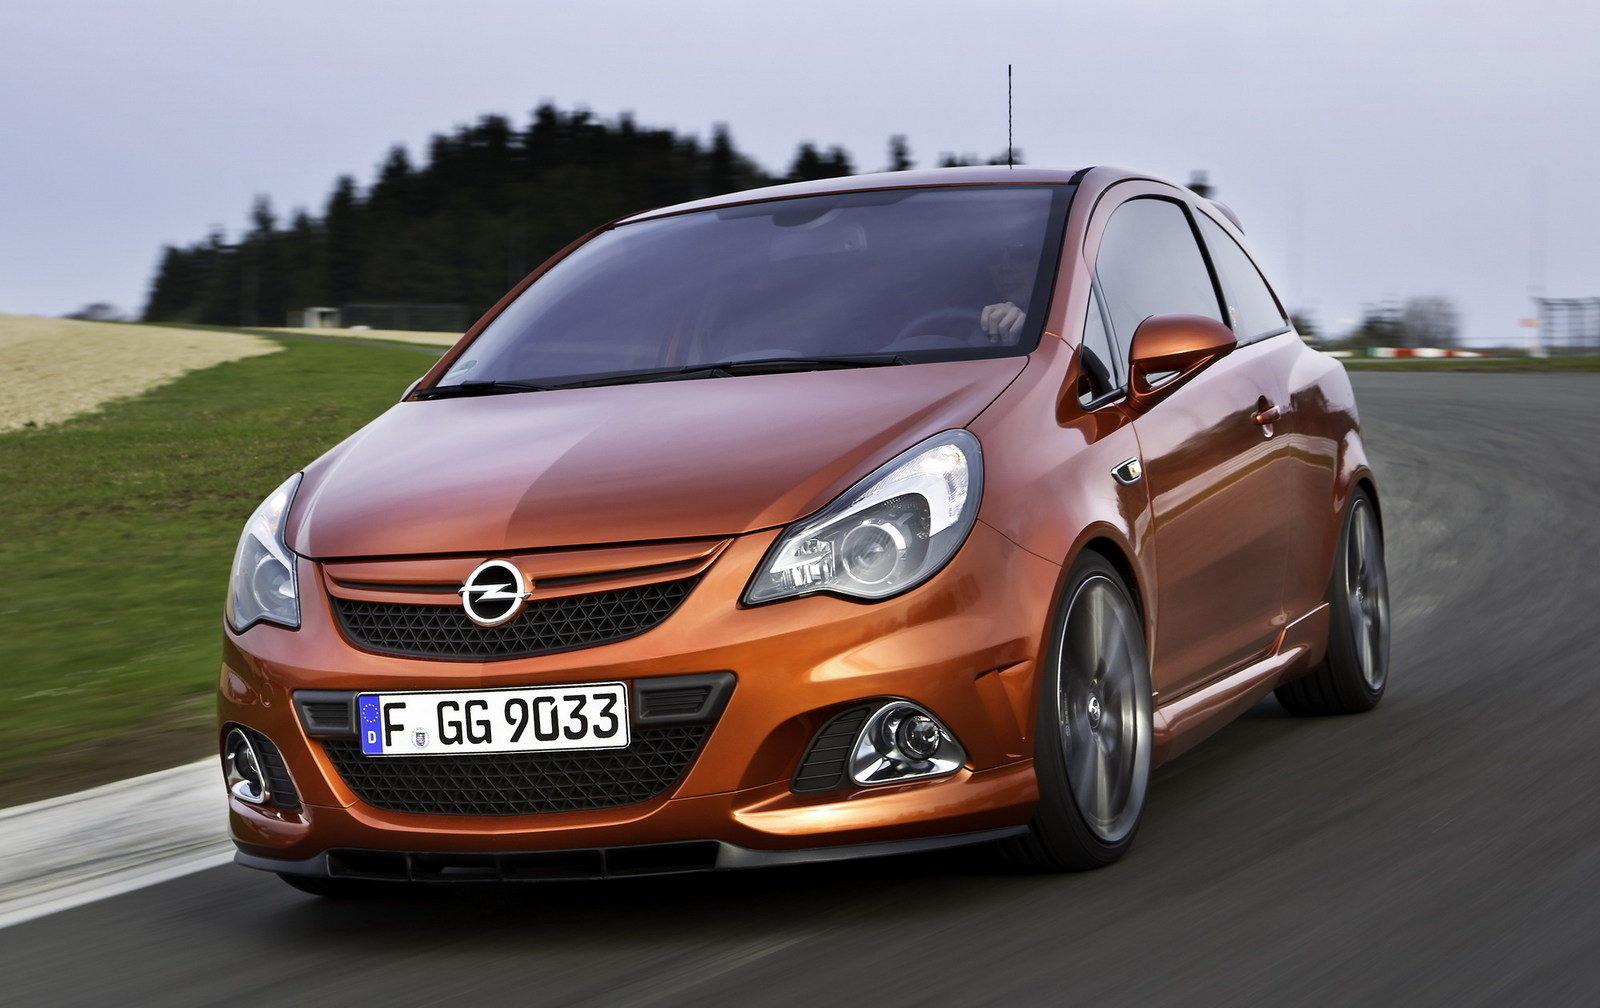 2011 opel corsa opc nurburgring edition picture 401110. Black Bedroom Furniture Sets. Home Design Ideas